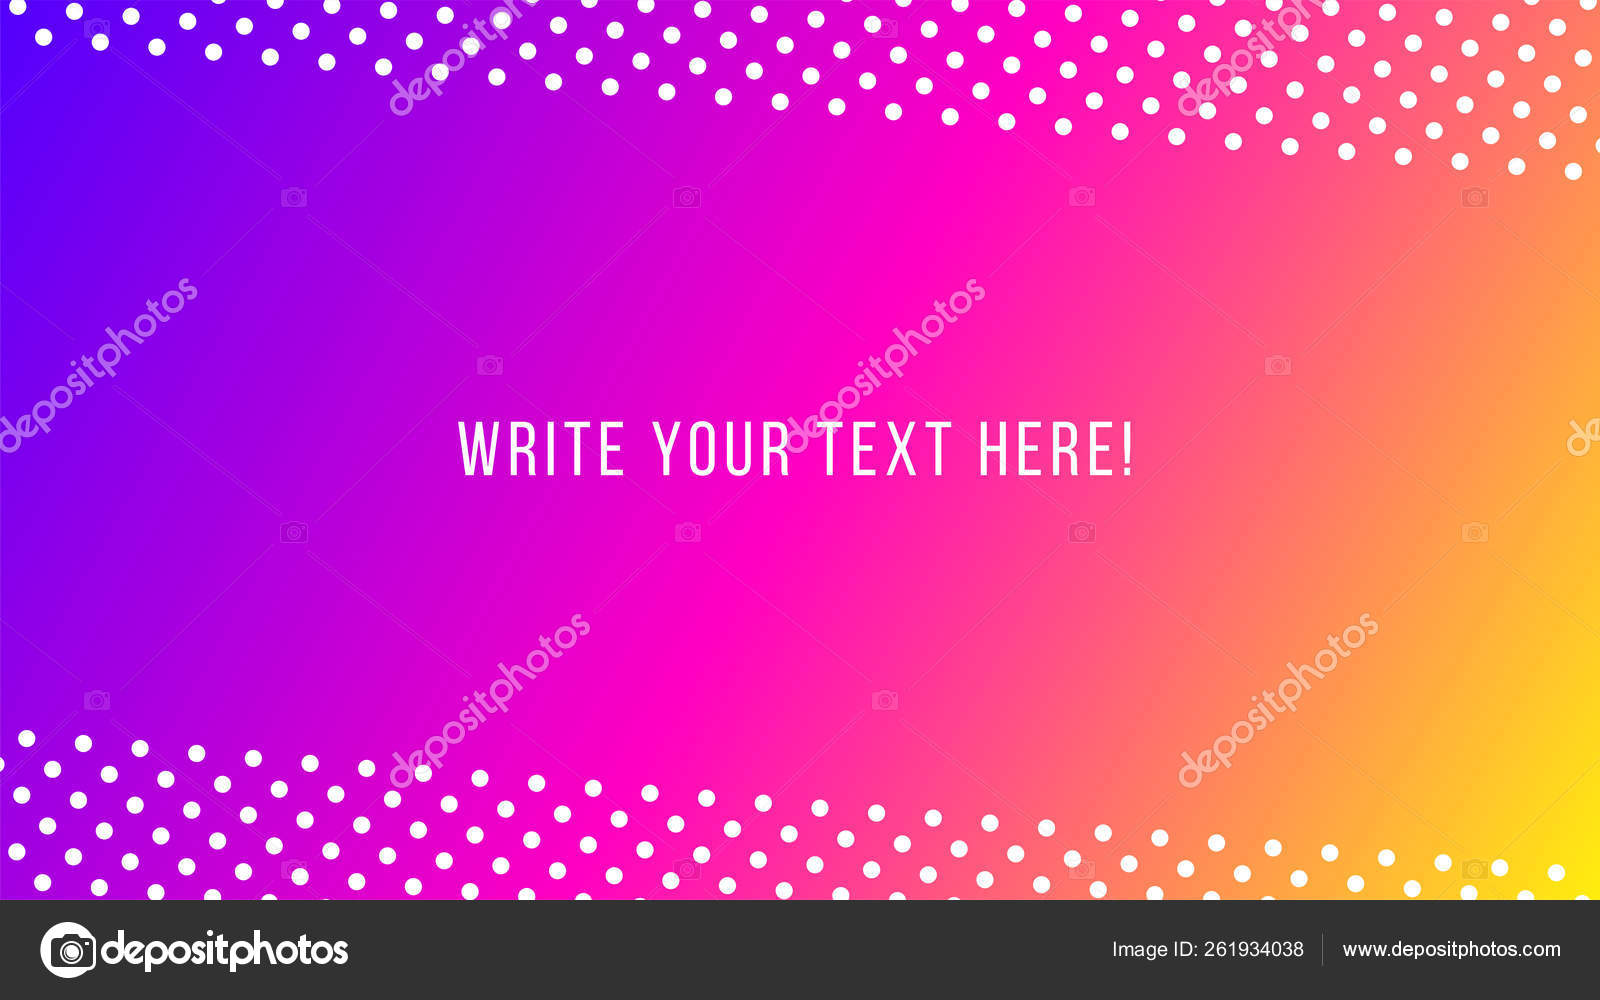 Vaporwave Retrowave Abstract Background Gradient Colorful Shaps Memphis Geometric Elements Stock Vector C V Scaperrotta 261934038